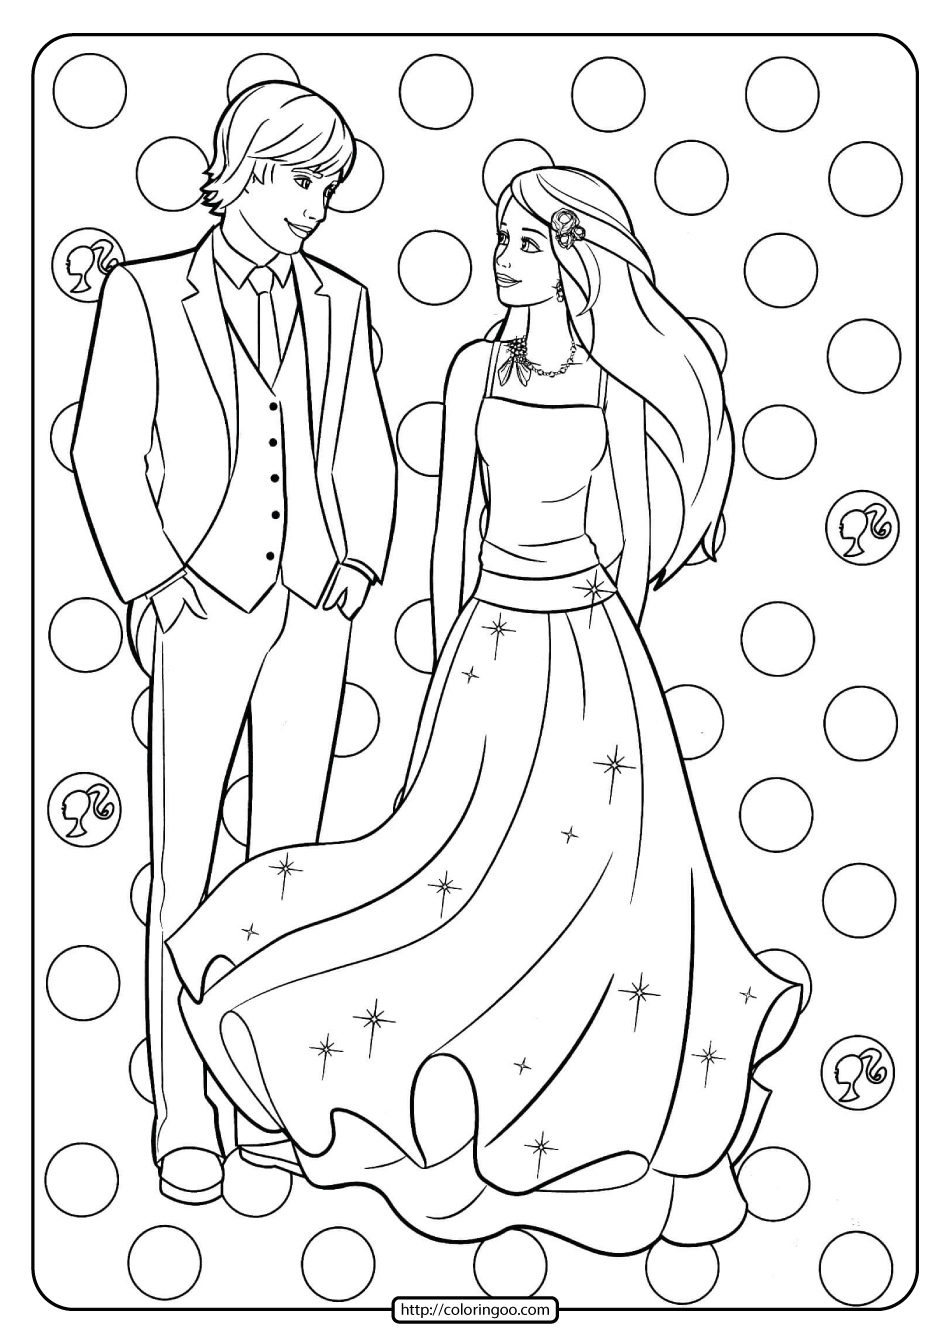 Free Printable Barbie And Ken Pdf Coloring Pages 14 Barbie Coloring Pages Barbie Coloring Mermaid Coloring Pages